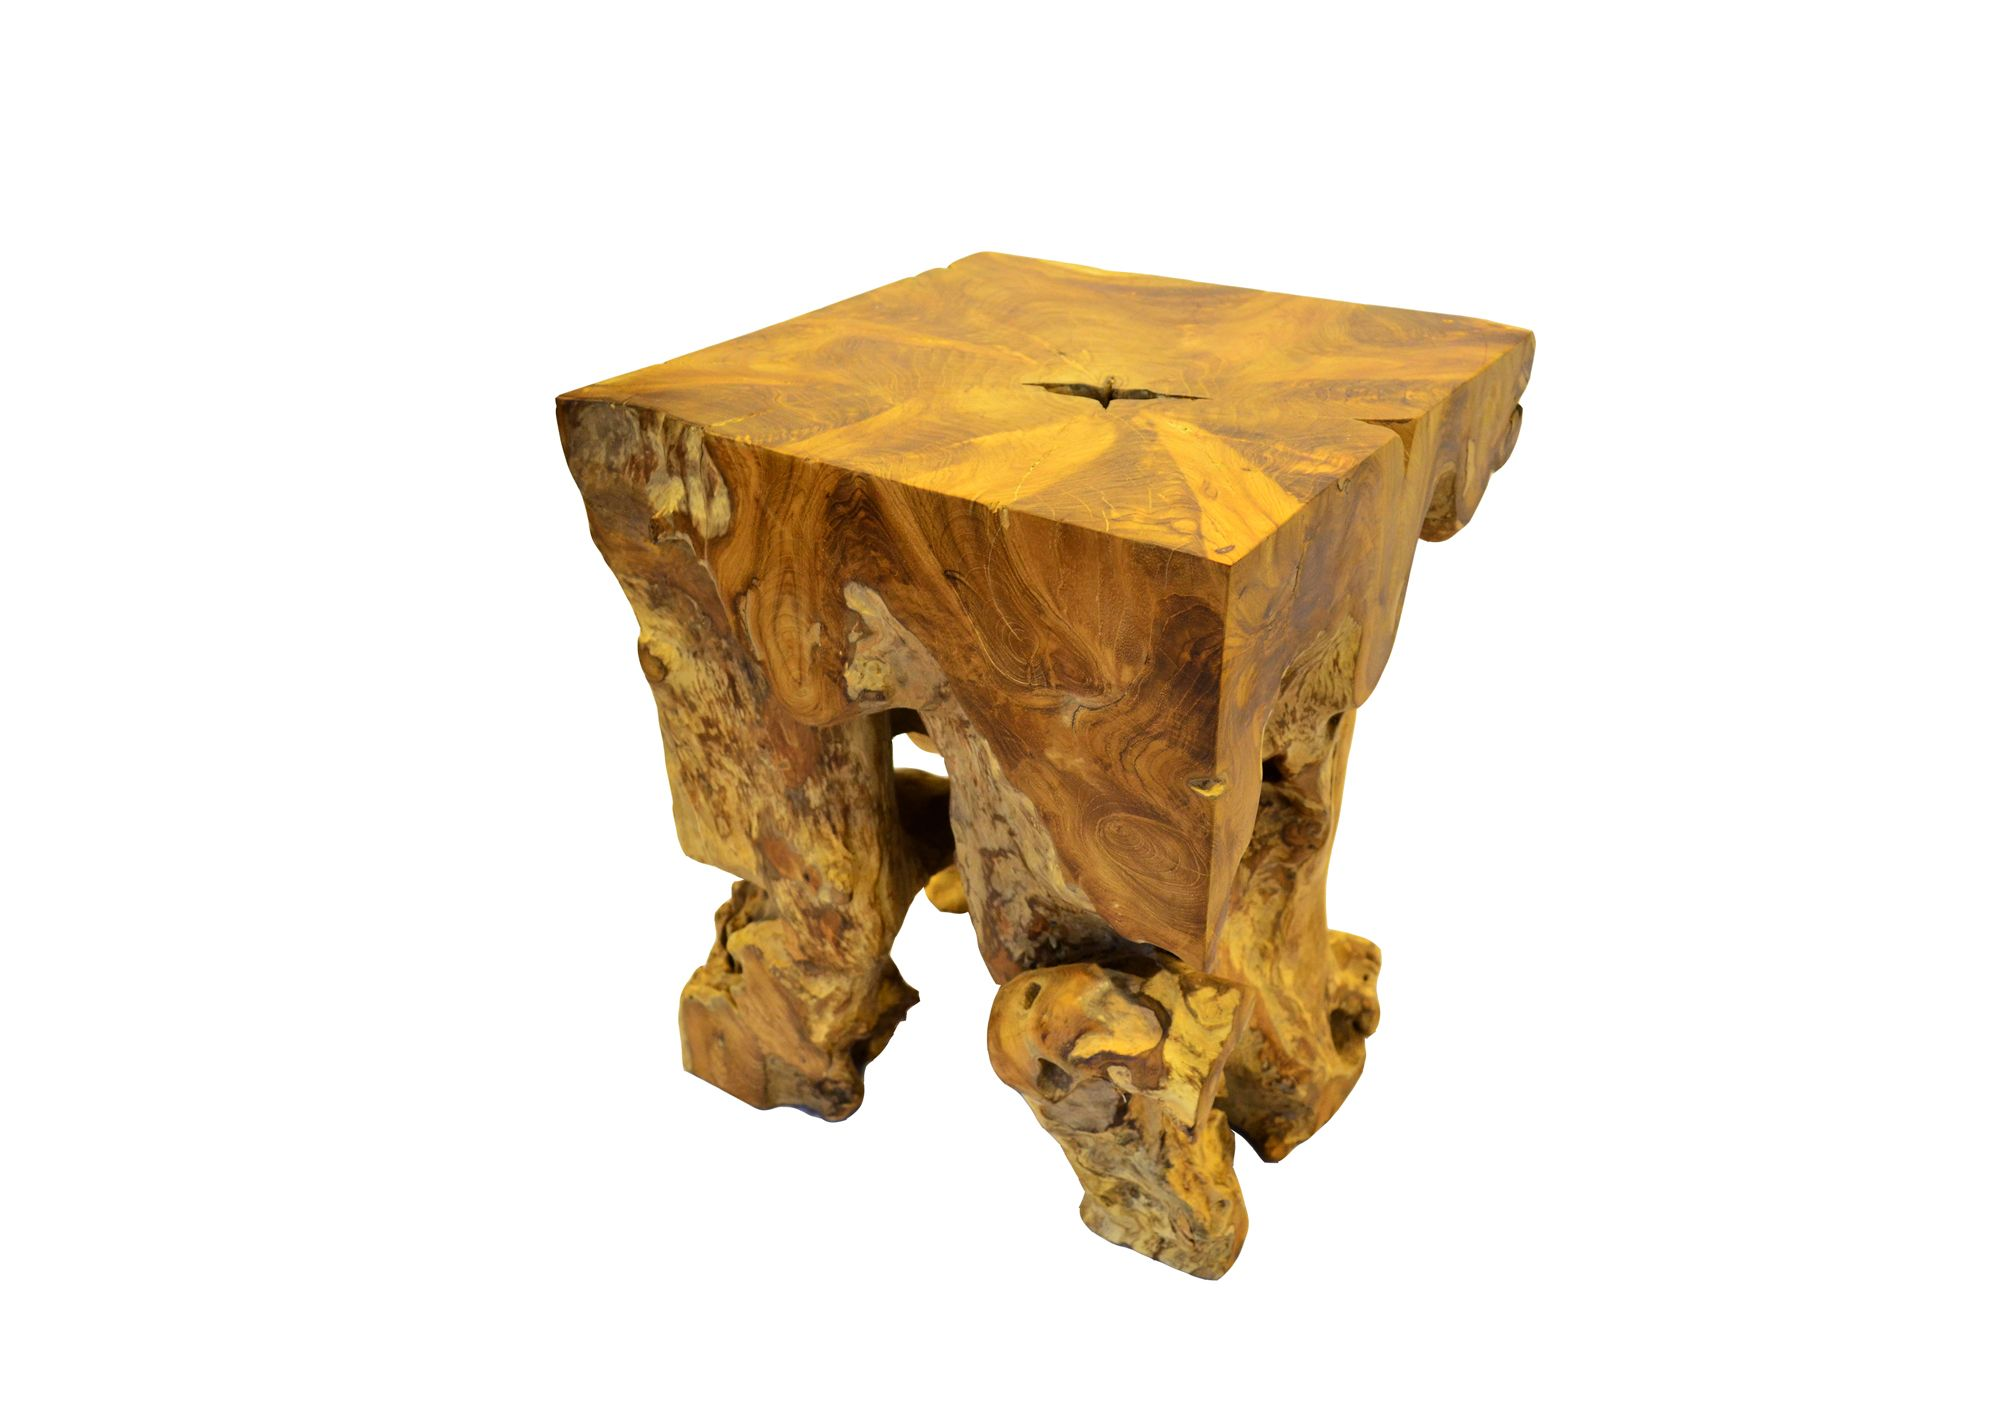 Square Root Stool A Teak A Versatile Teak Wood Root Stool That Can Be Doubled As A Side Or Coffee Table